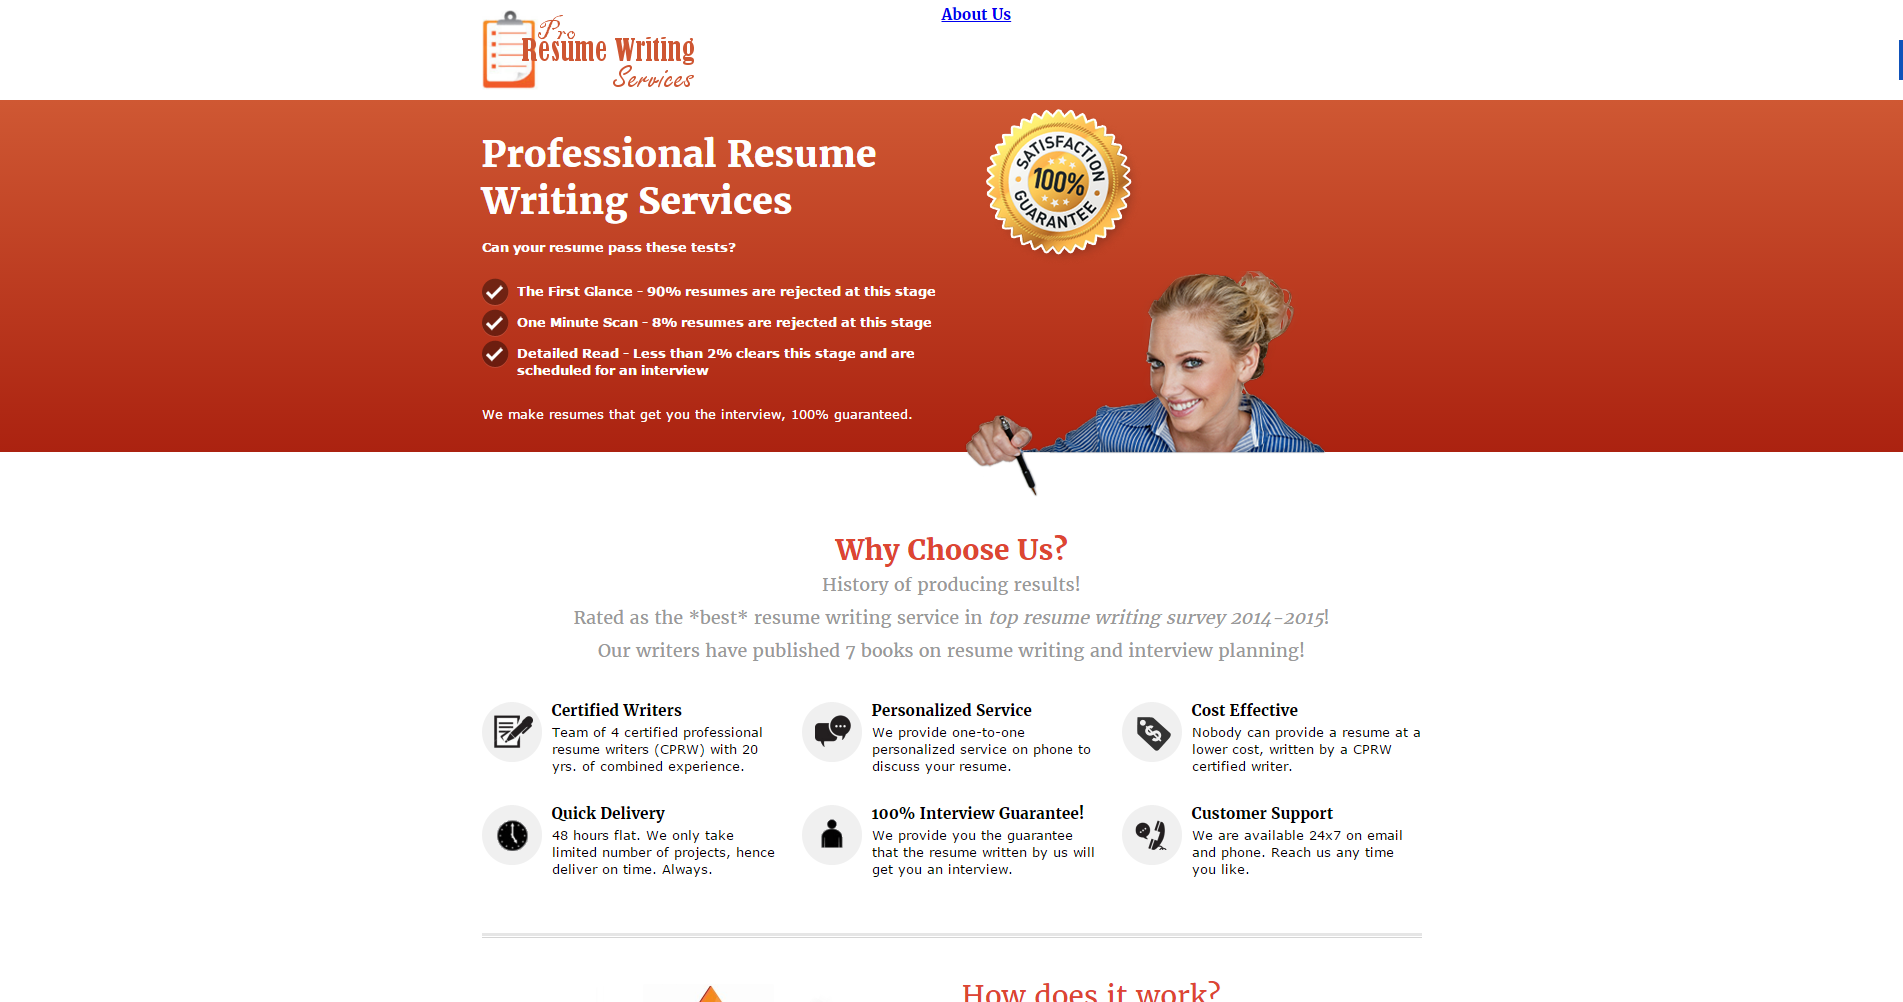 Review of essay writing services statesville nc